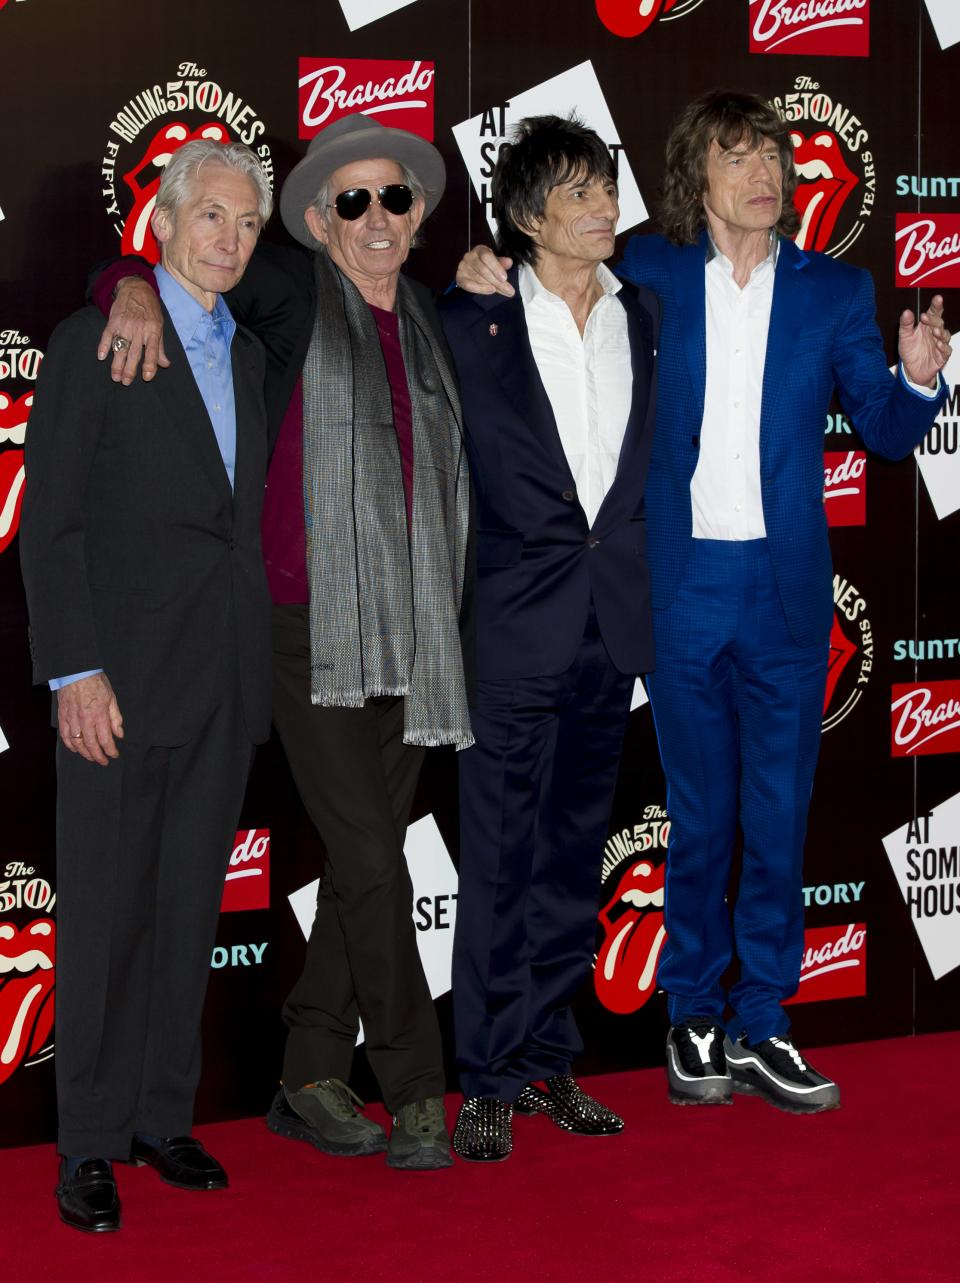 From left, Charlie Watts, Keith Richards, Ronnie Wood and Mick Jagger, from the British Rock band The Rolling Stones, arrive at a central London venue, to mark the 50th anniversary of the Rolling Stones first performance, Thursday, July 12, 2012. (AP Photo/Jonathan Short)